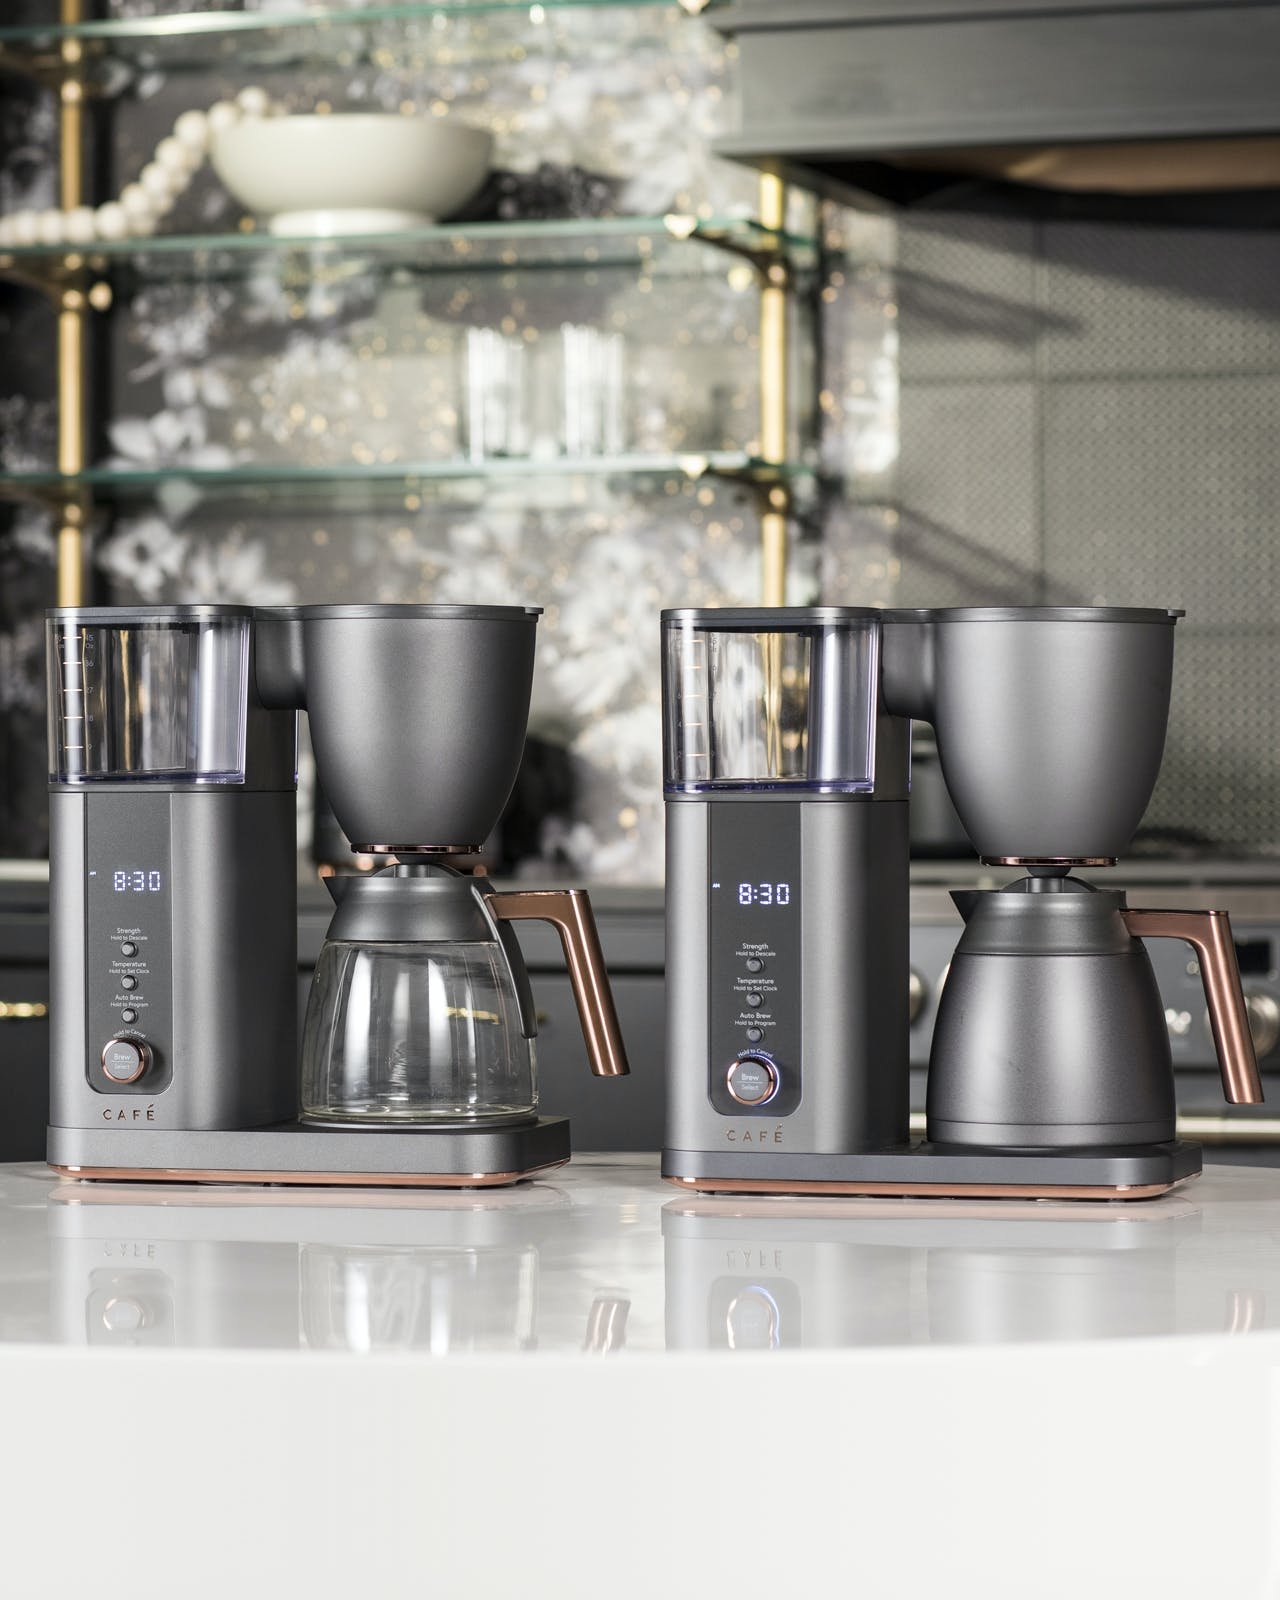 Glass Carafe and Thermal Carafe Coffee Makers on counter